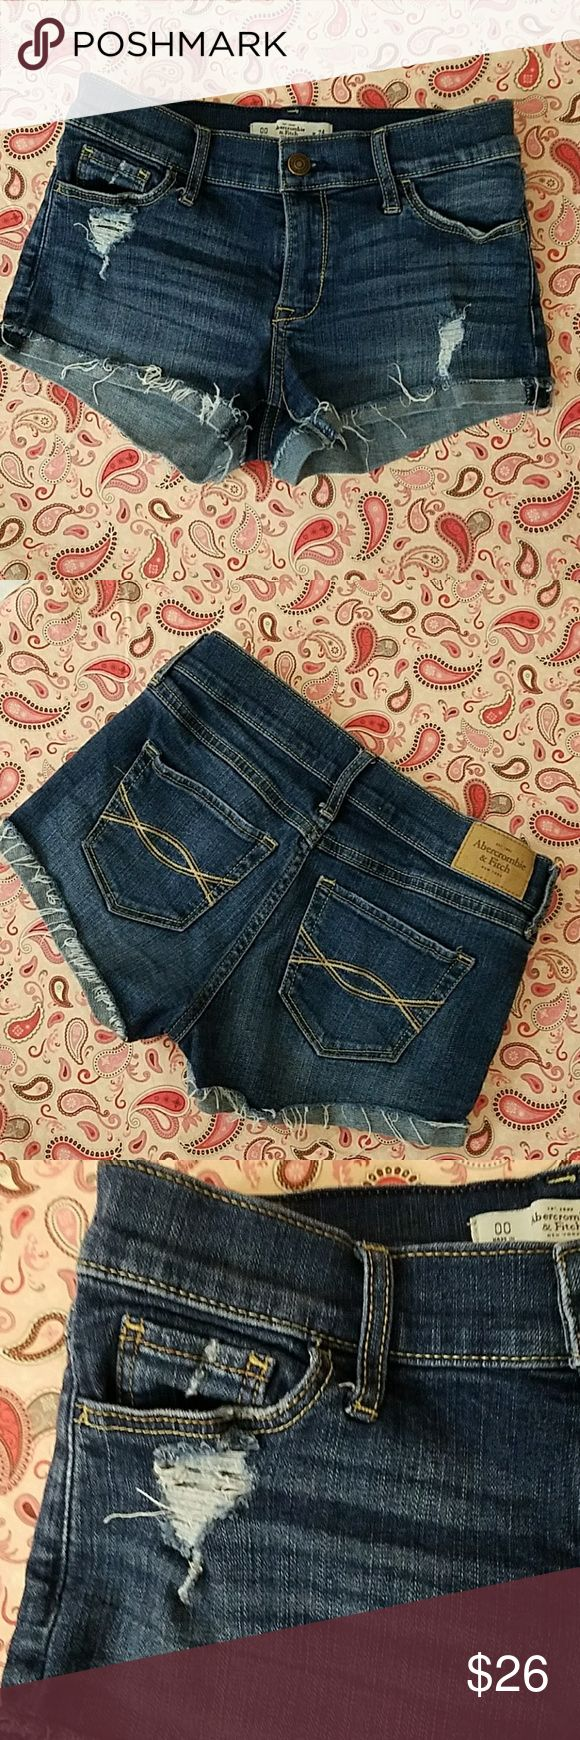 🍒Abercrombie & Fitch Distressed Jean Shorts 🍉 Perfect Pair Distressed medium blue, rolled cut off shorts. Brand new quailty! Abercrombie and Fitch Shorts Jean Shorts